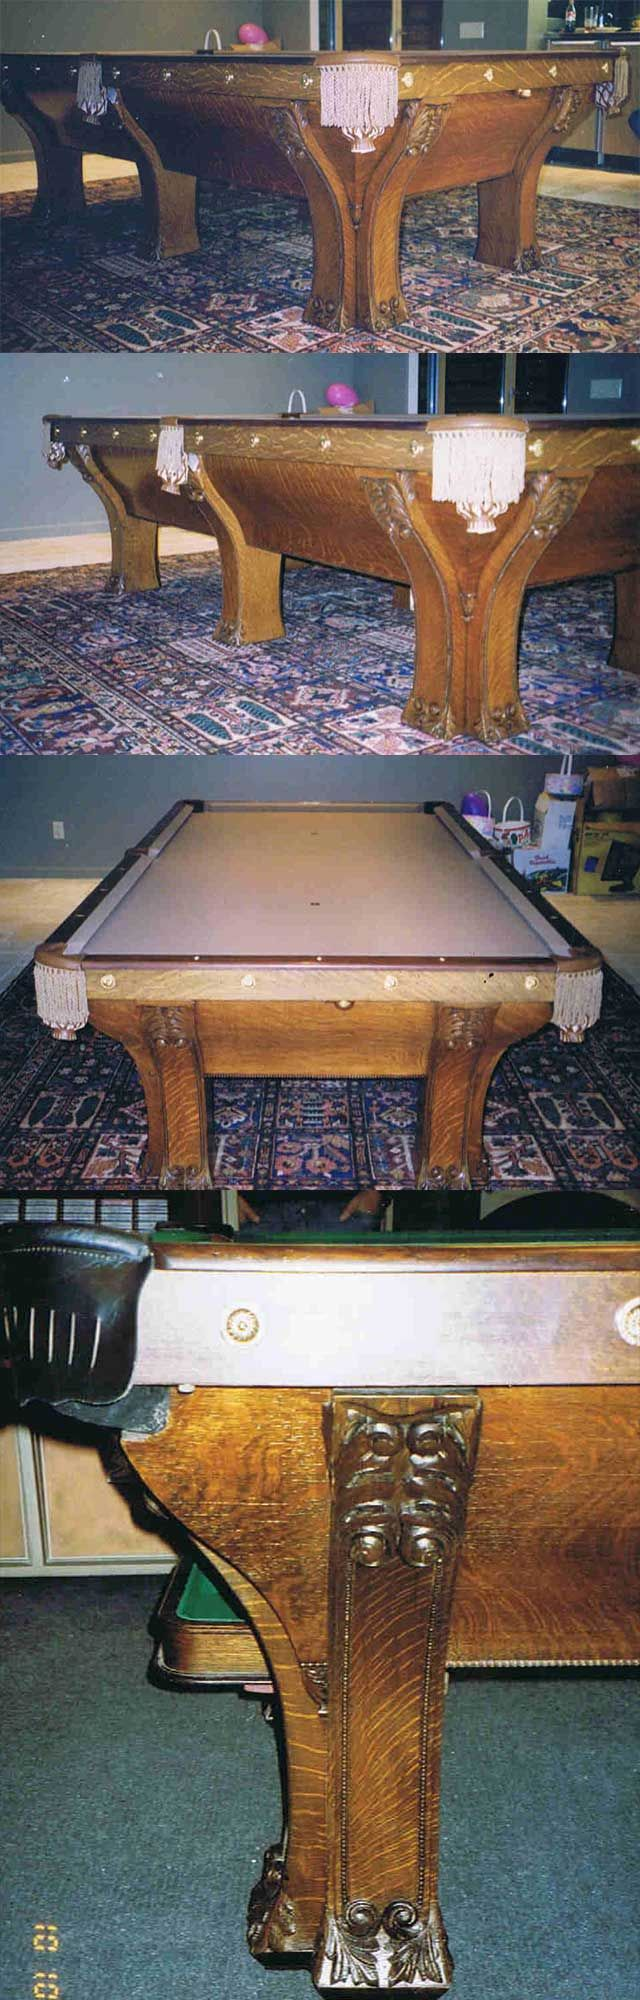 Classic Billiards   Antique Pool Tables U0026 Antique Pool Table Parts   Table  Display